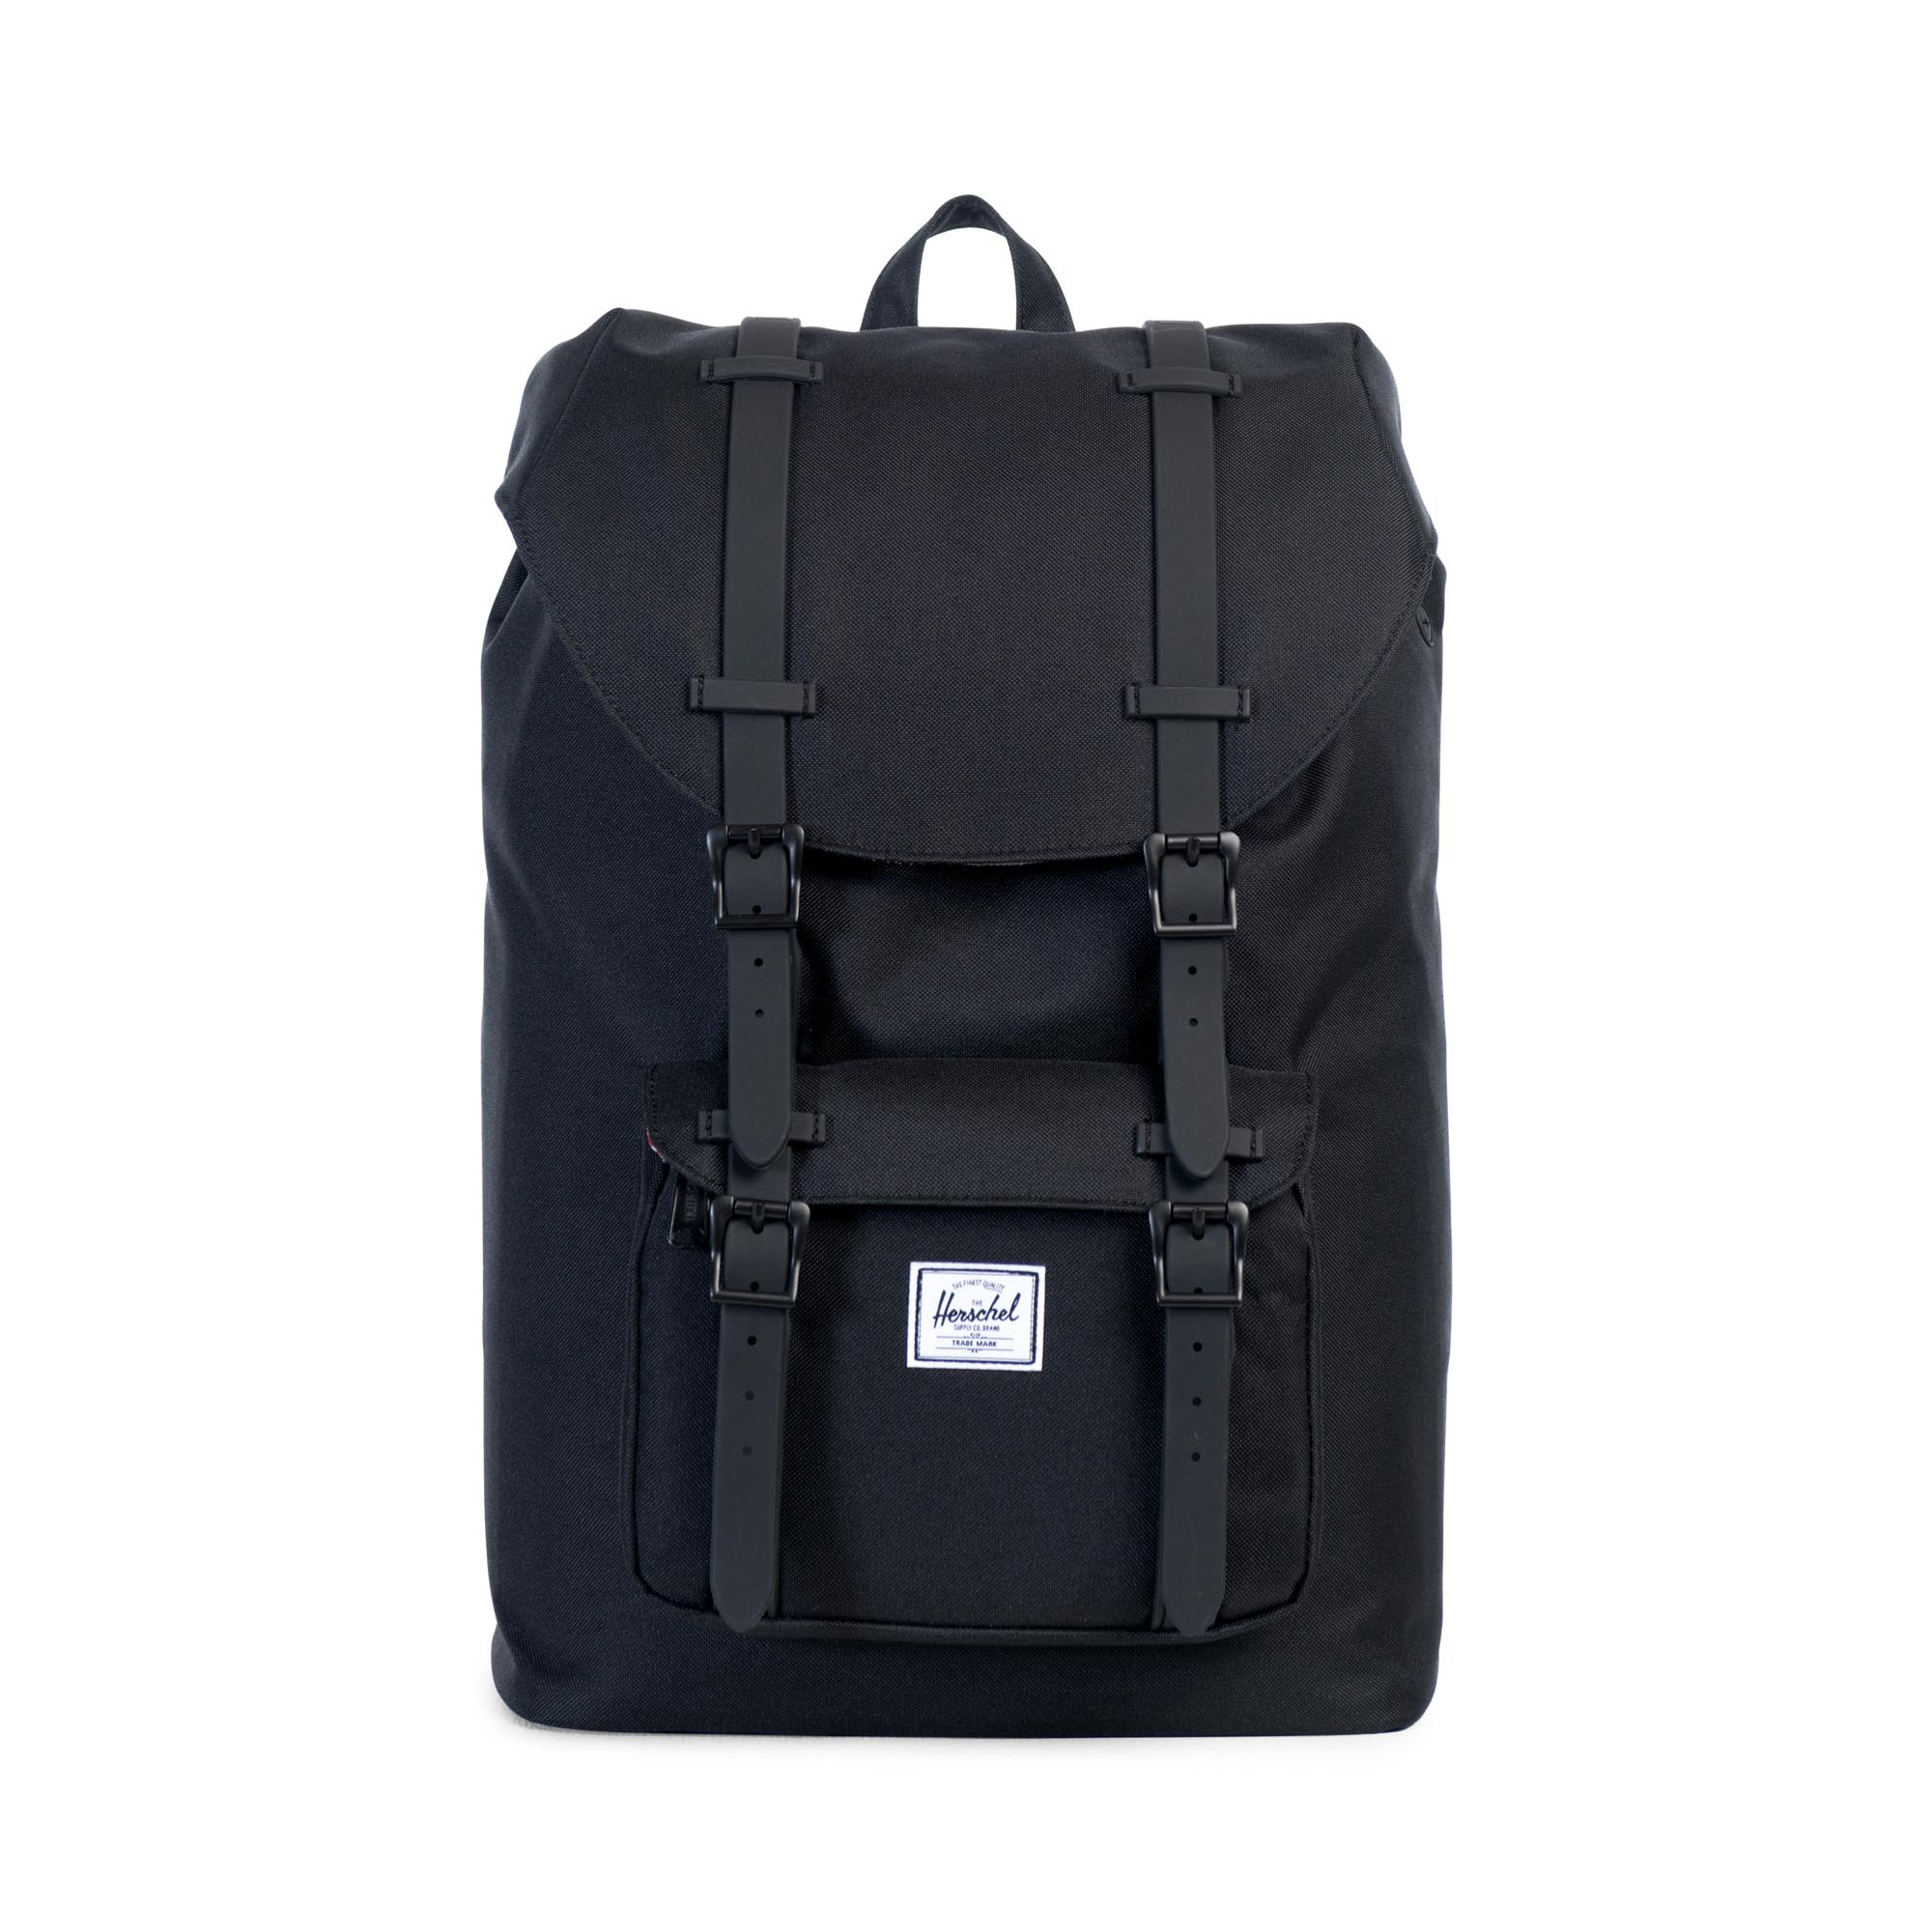 1f9f5c035 Herschel Little America Backpack Mid-Volume | Herschel Supply Company